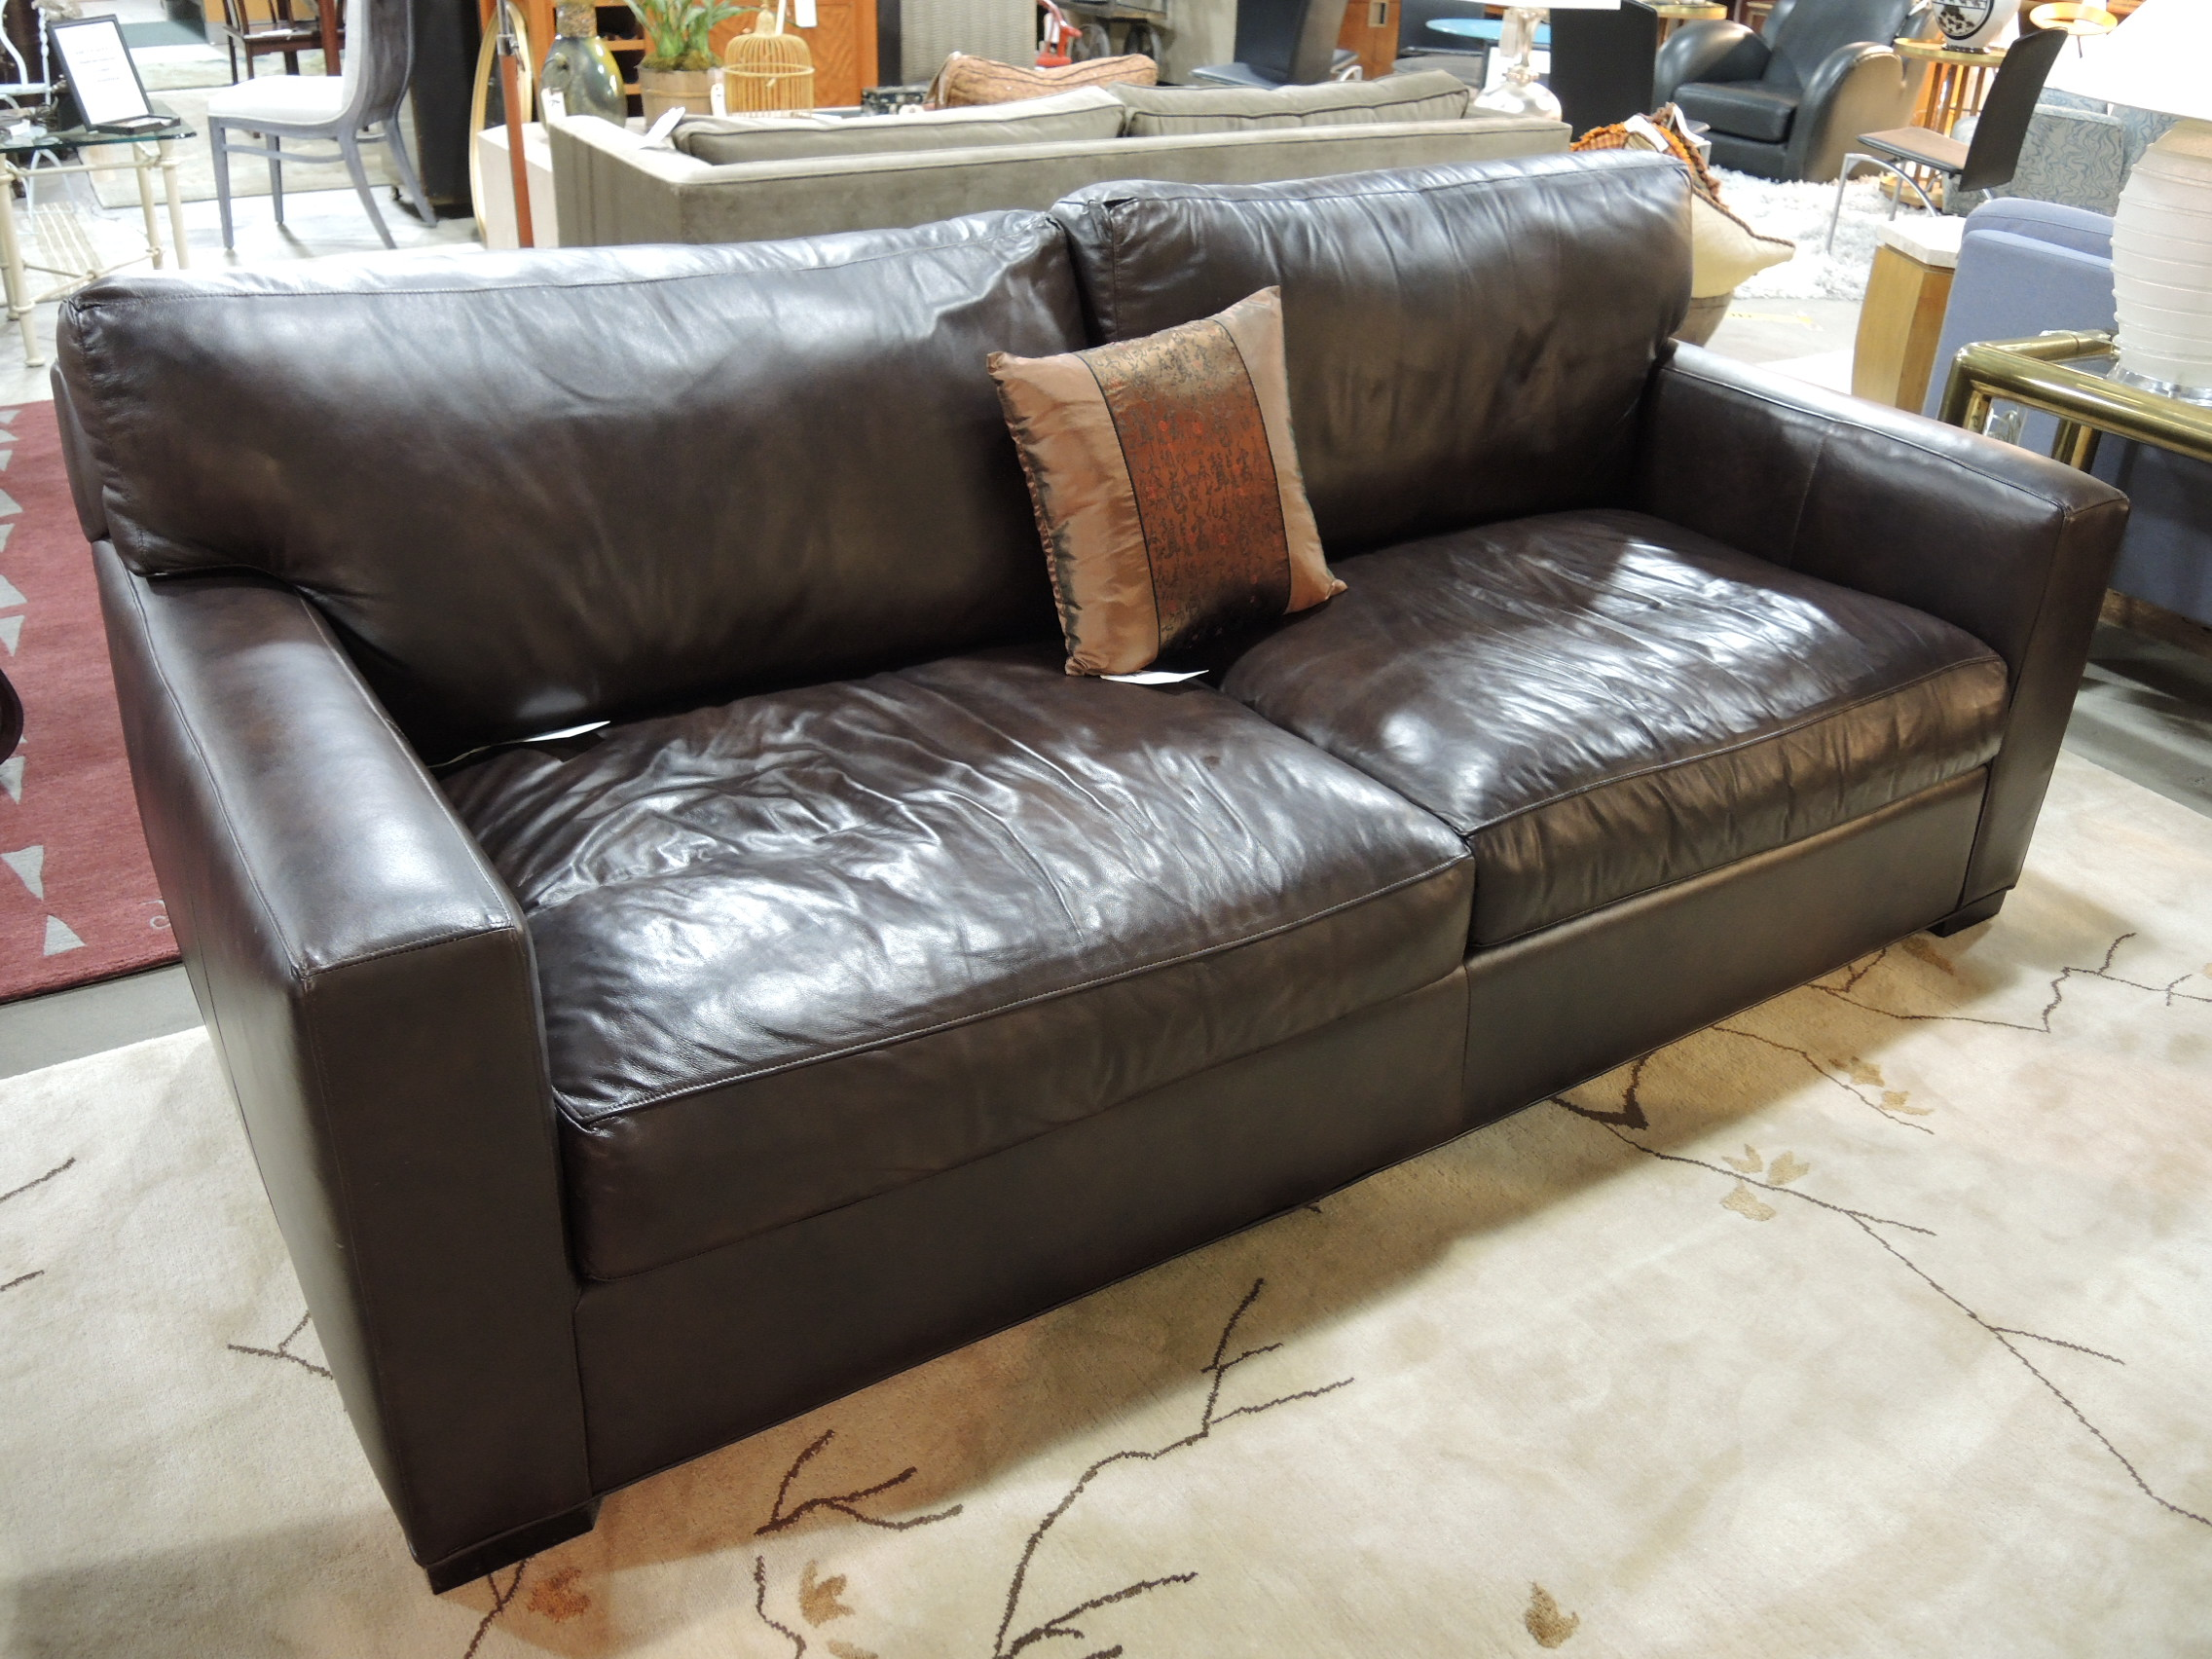 crate and barrel sofas canada mohair sofa seams to fit home